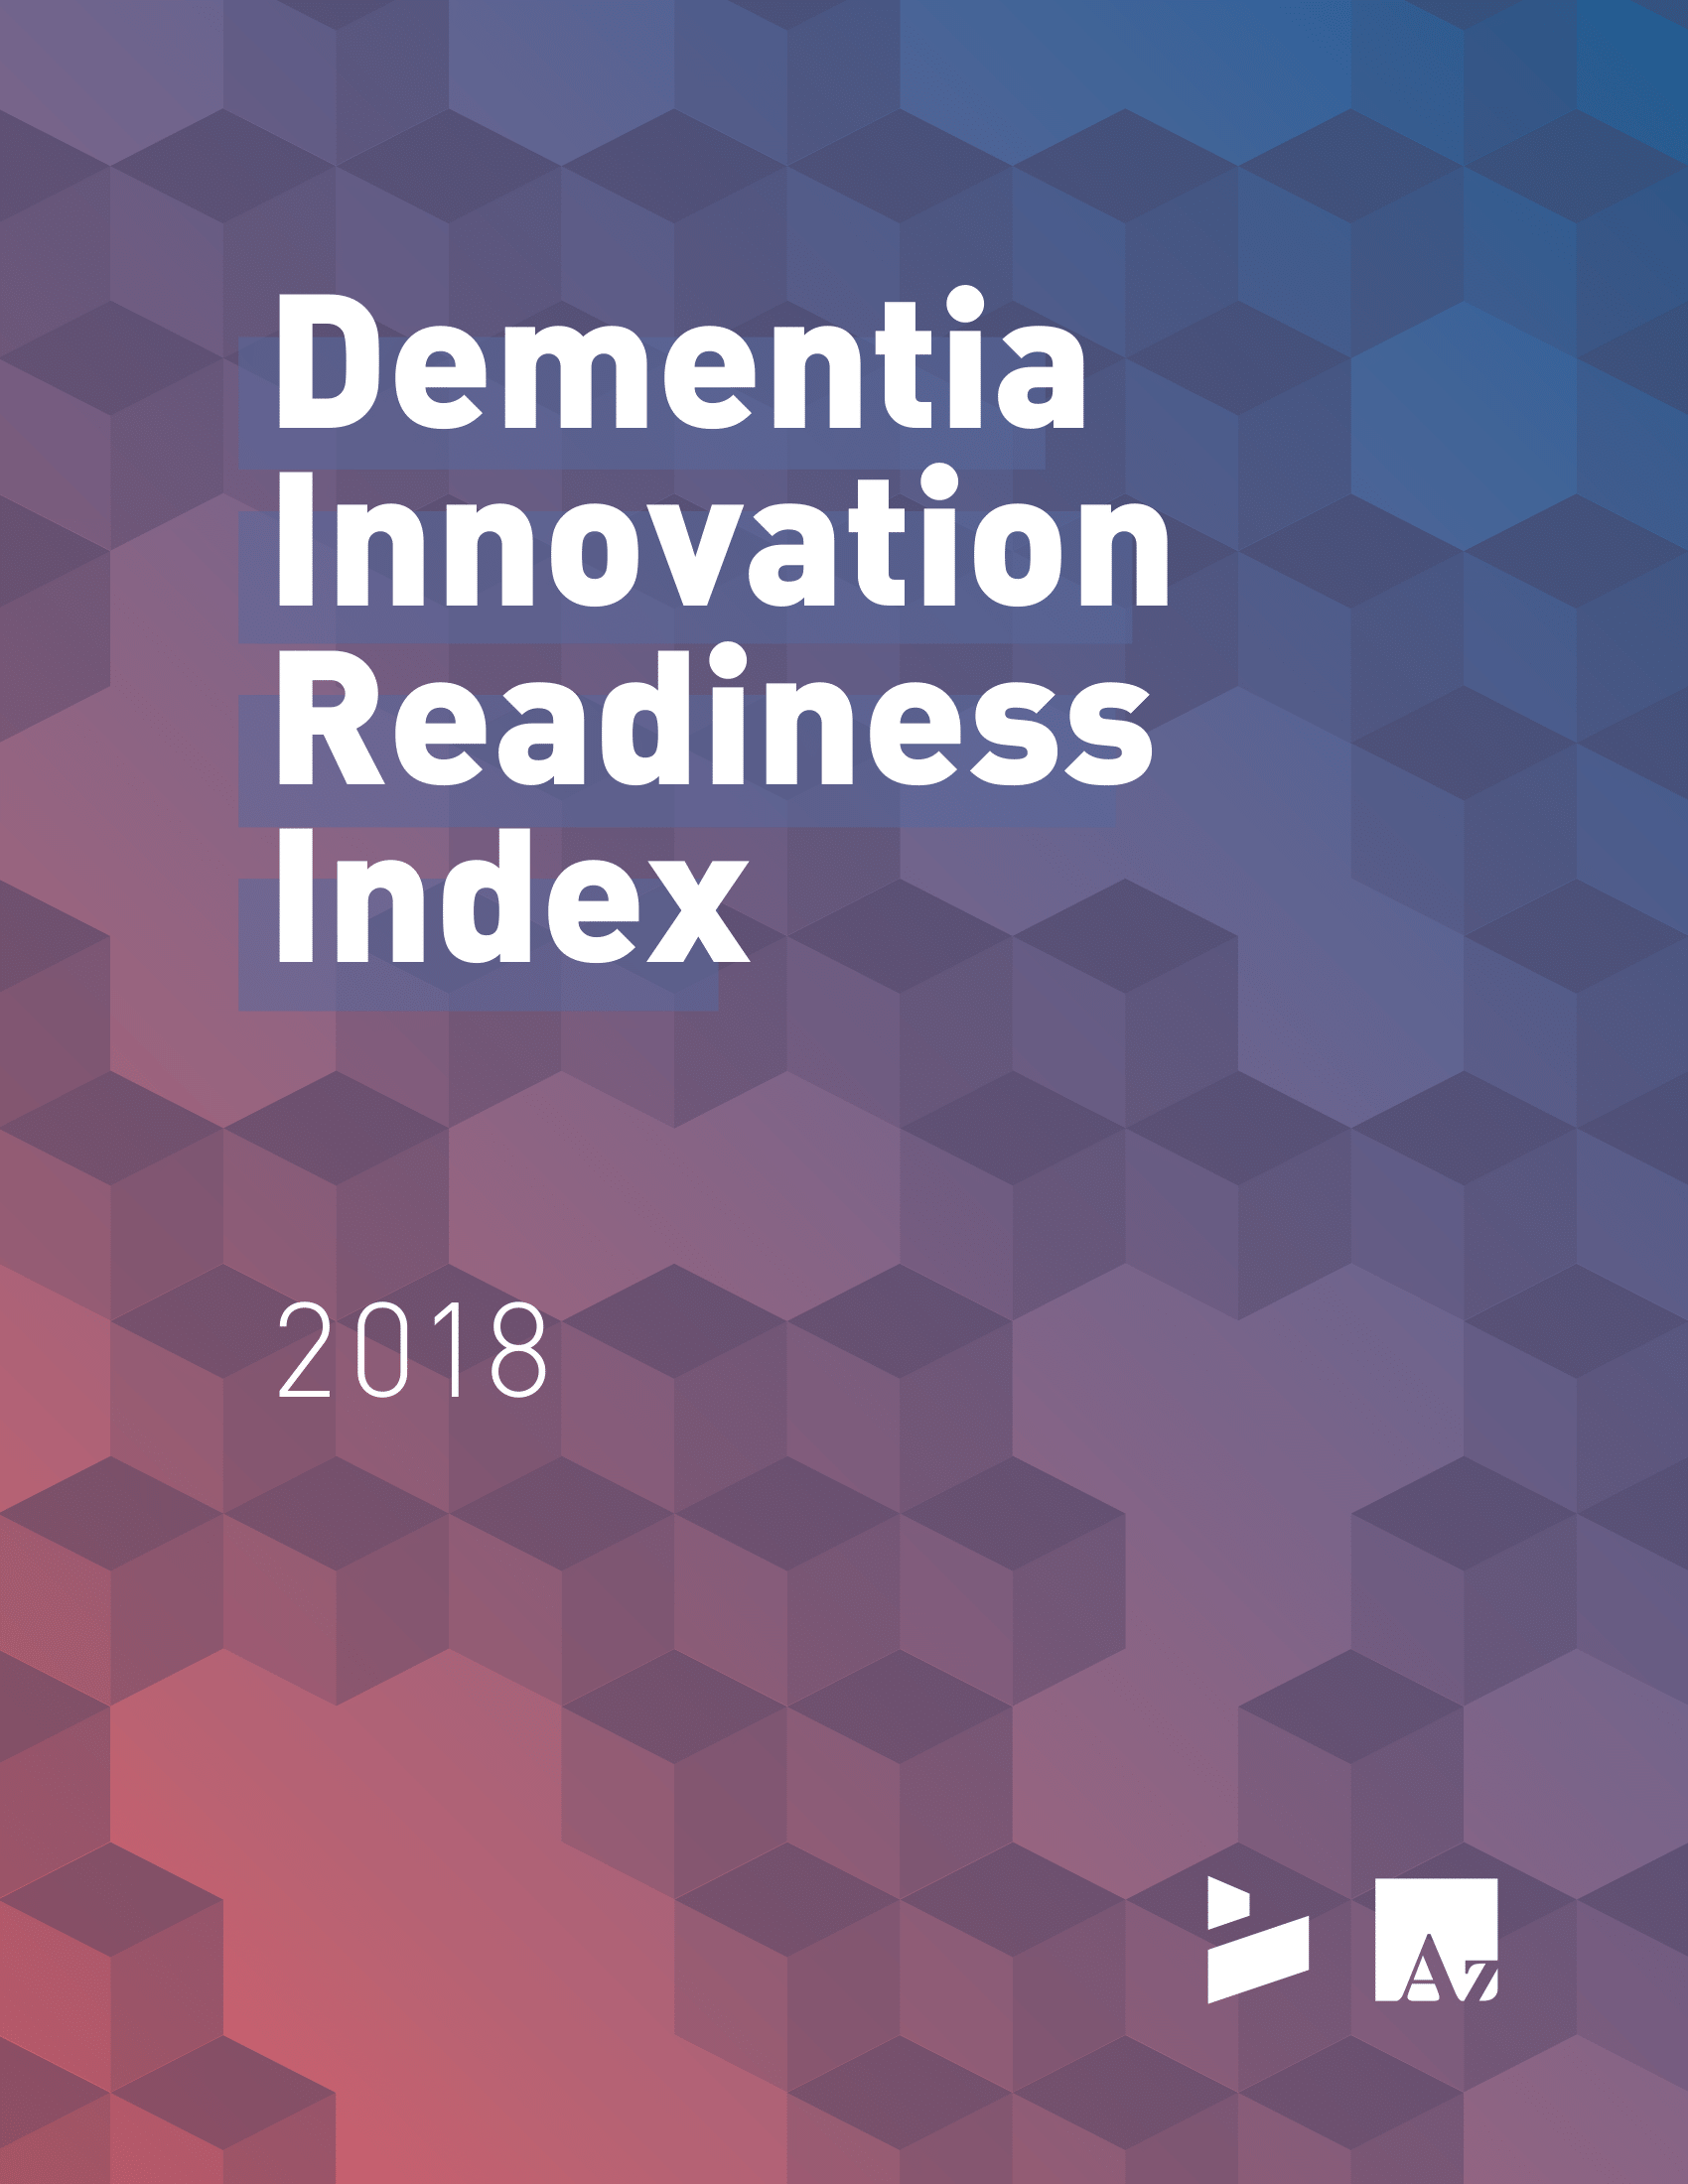 Dementia Innovation Readiness Index 2018